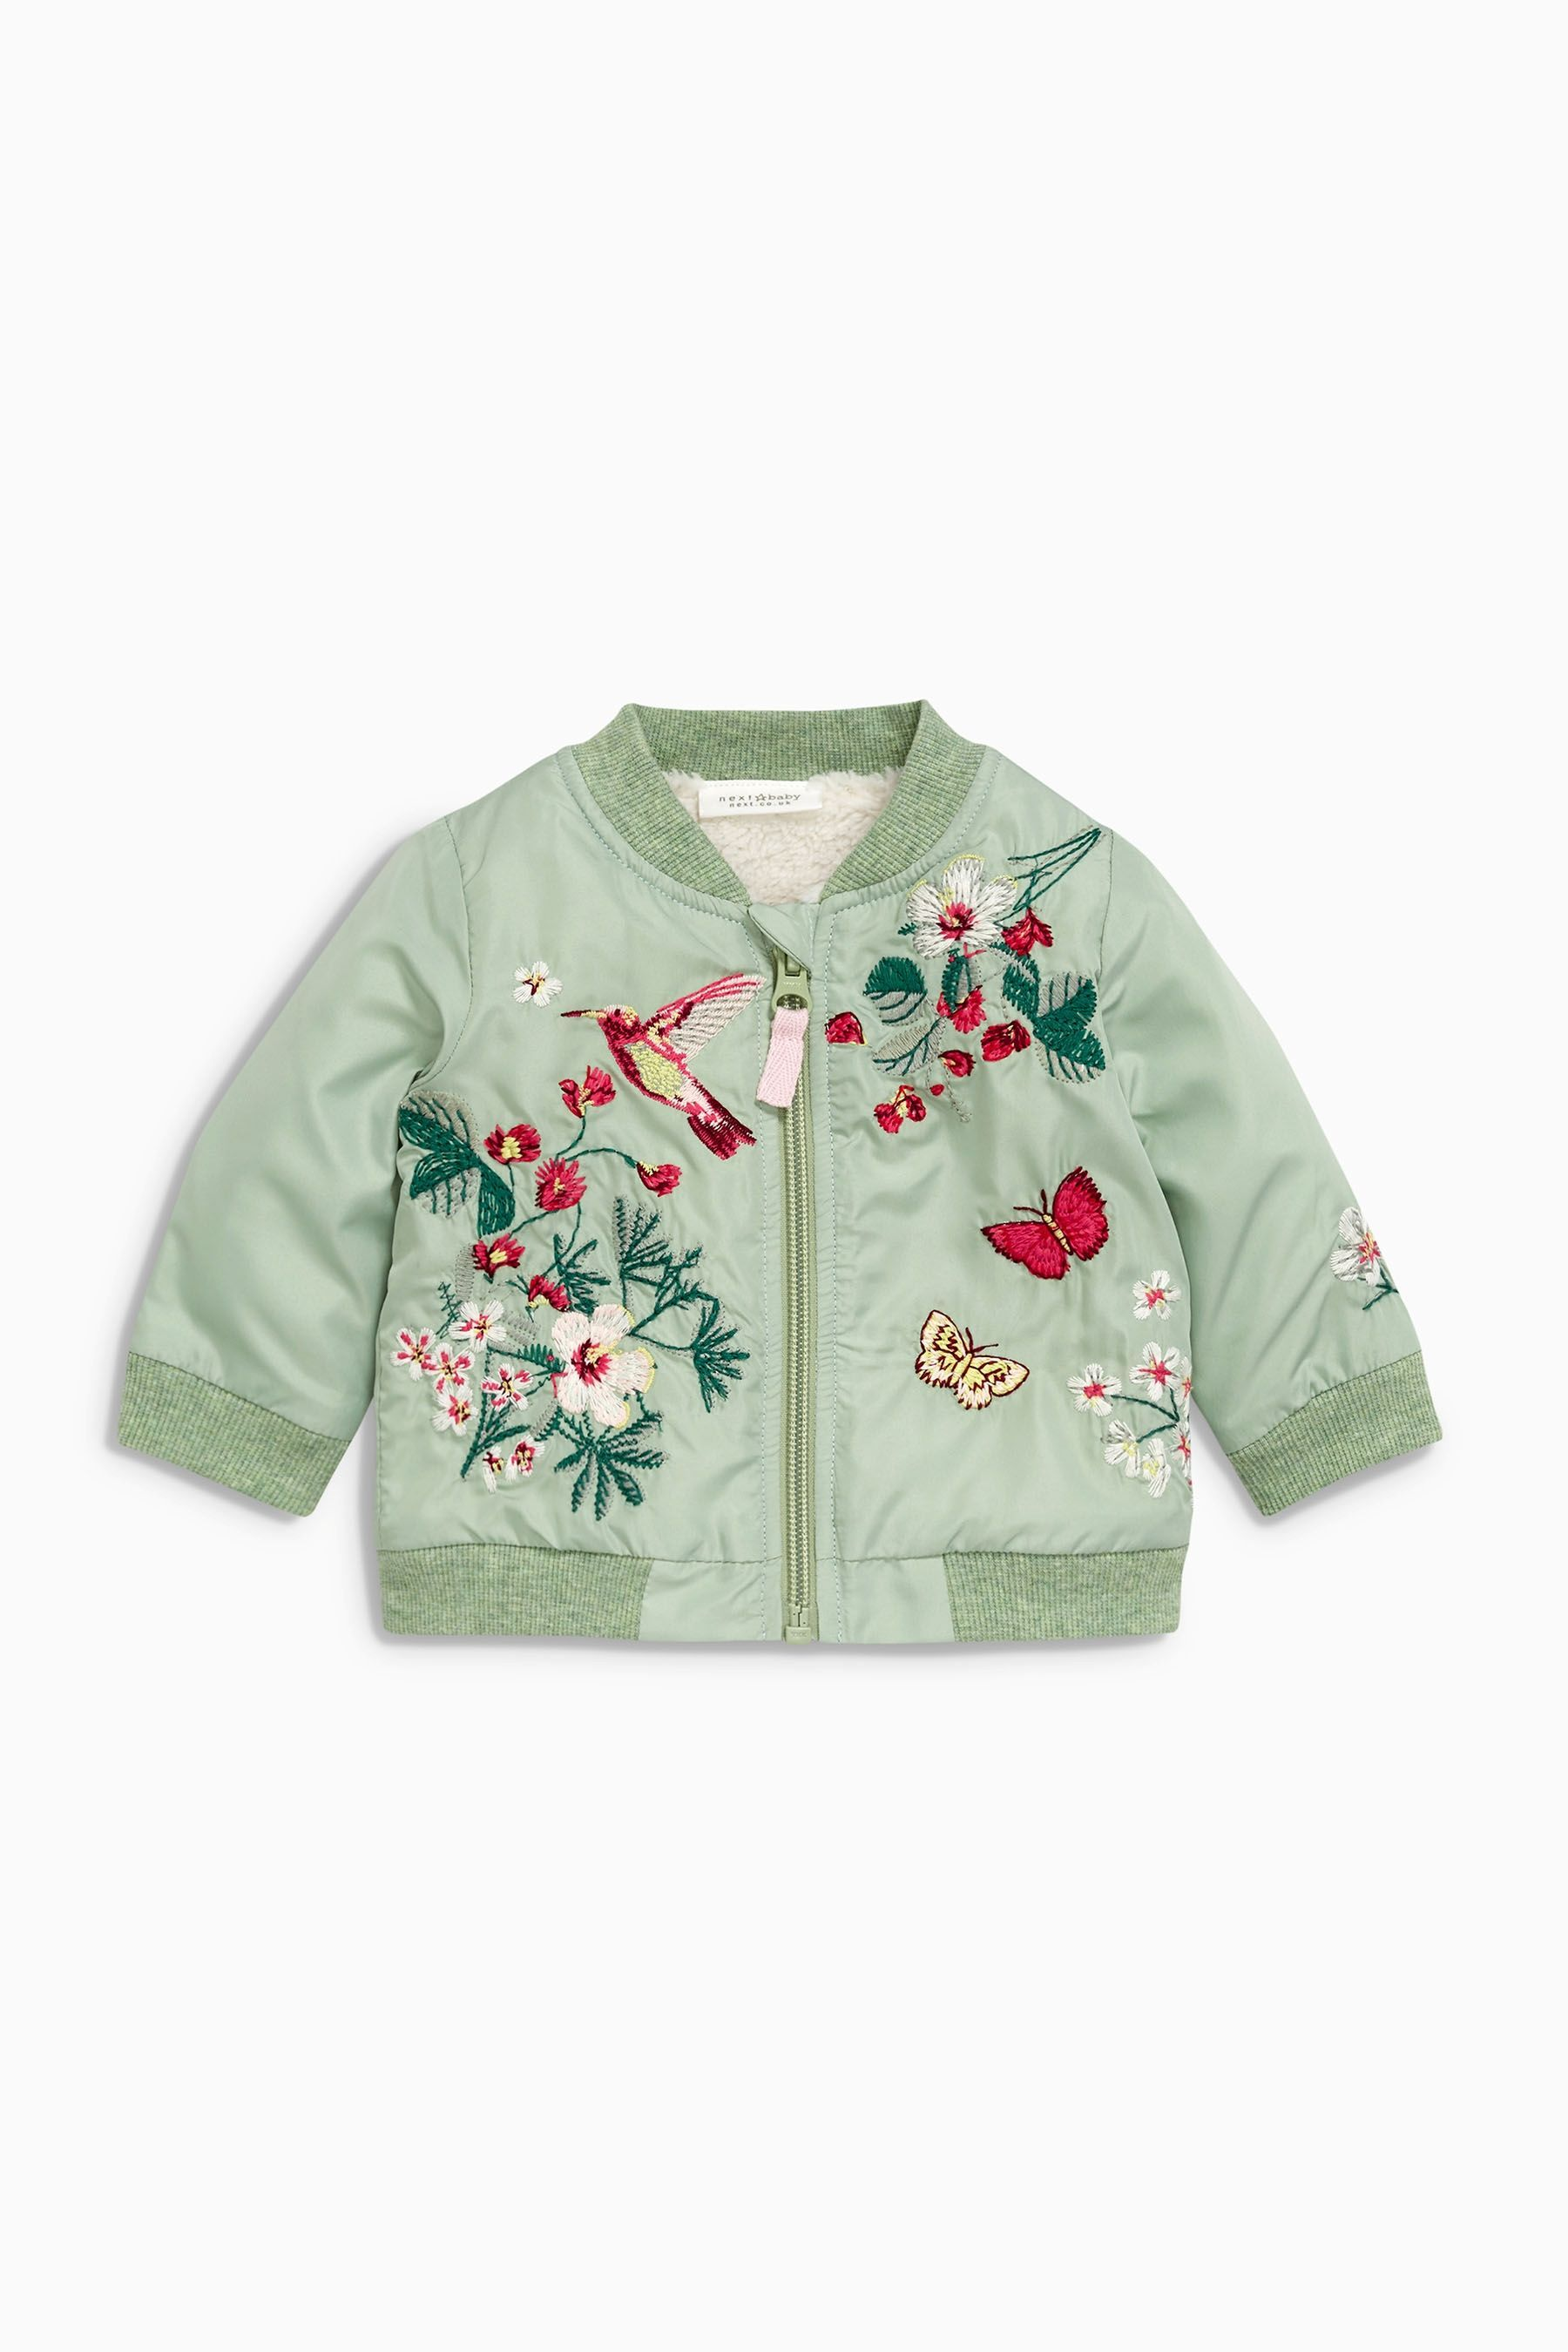 607915b41 Buy Green Embroidered Bomber Jacket (0mths-2yrs) from the Next UK ...